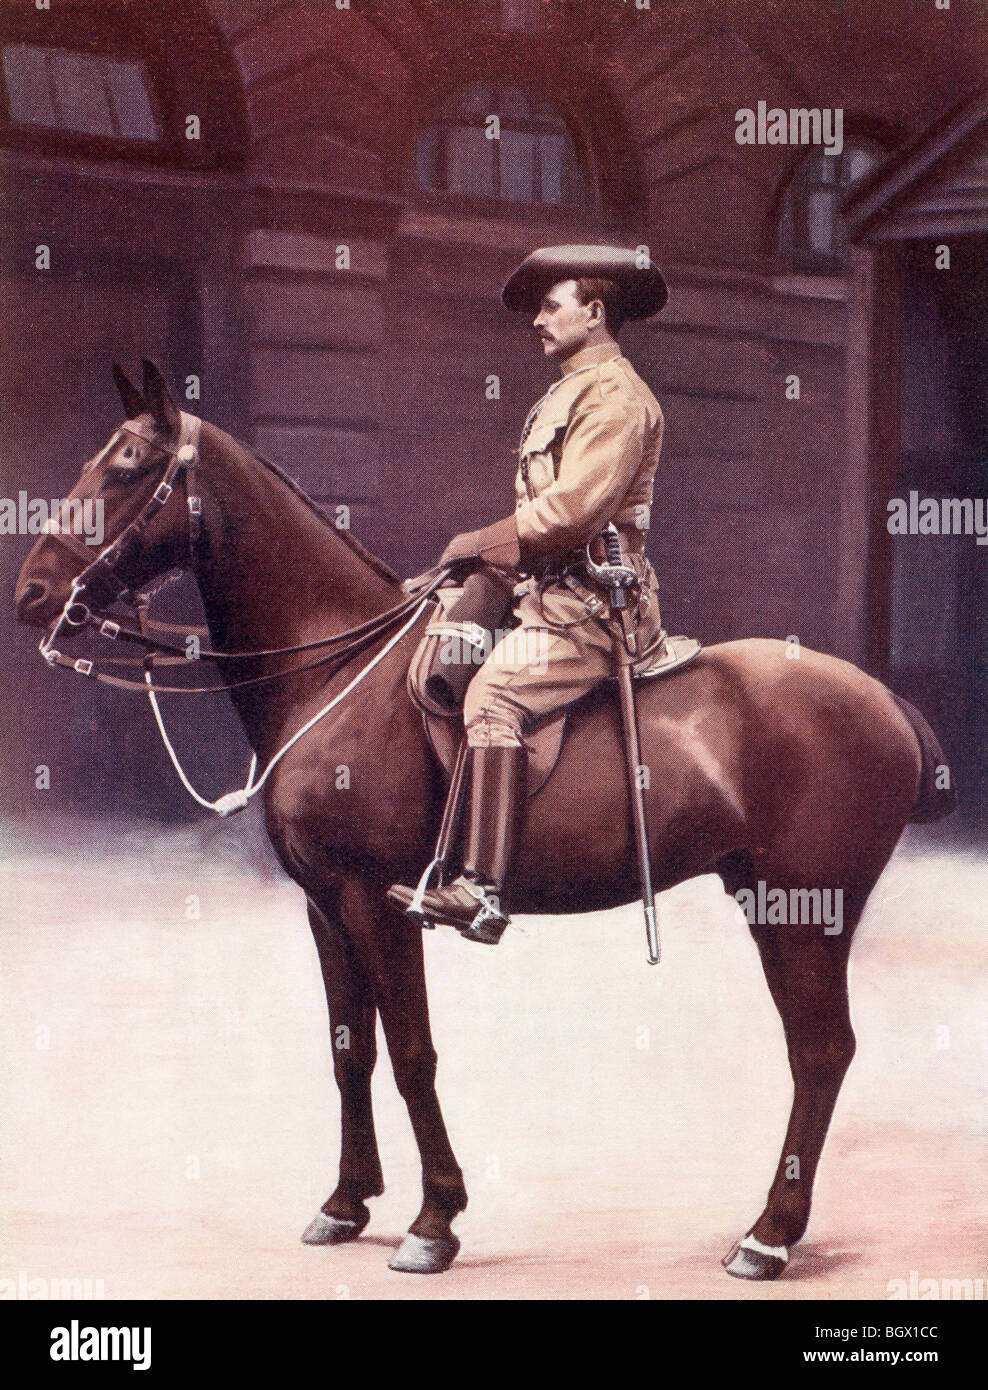 Sergeant major of the Imperial Light Horse regiment during the second Boer war. - Stock Image